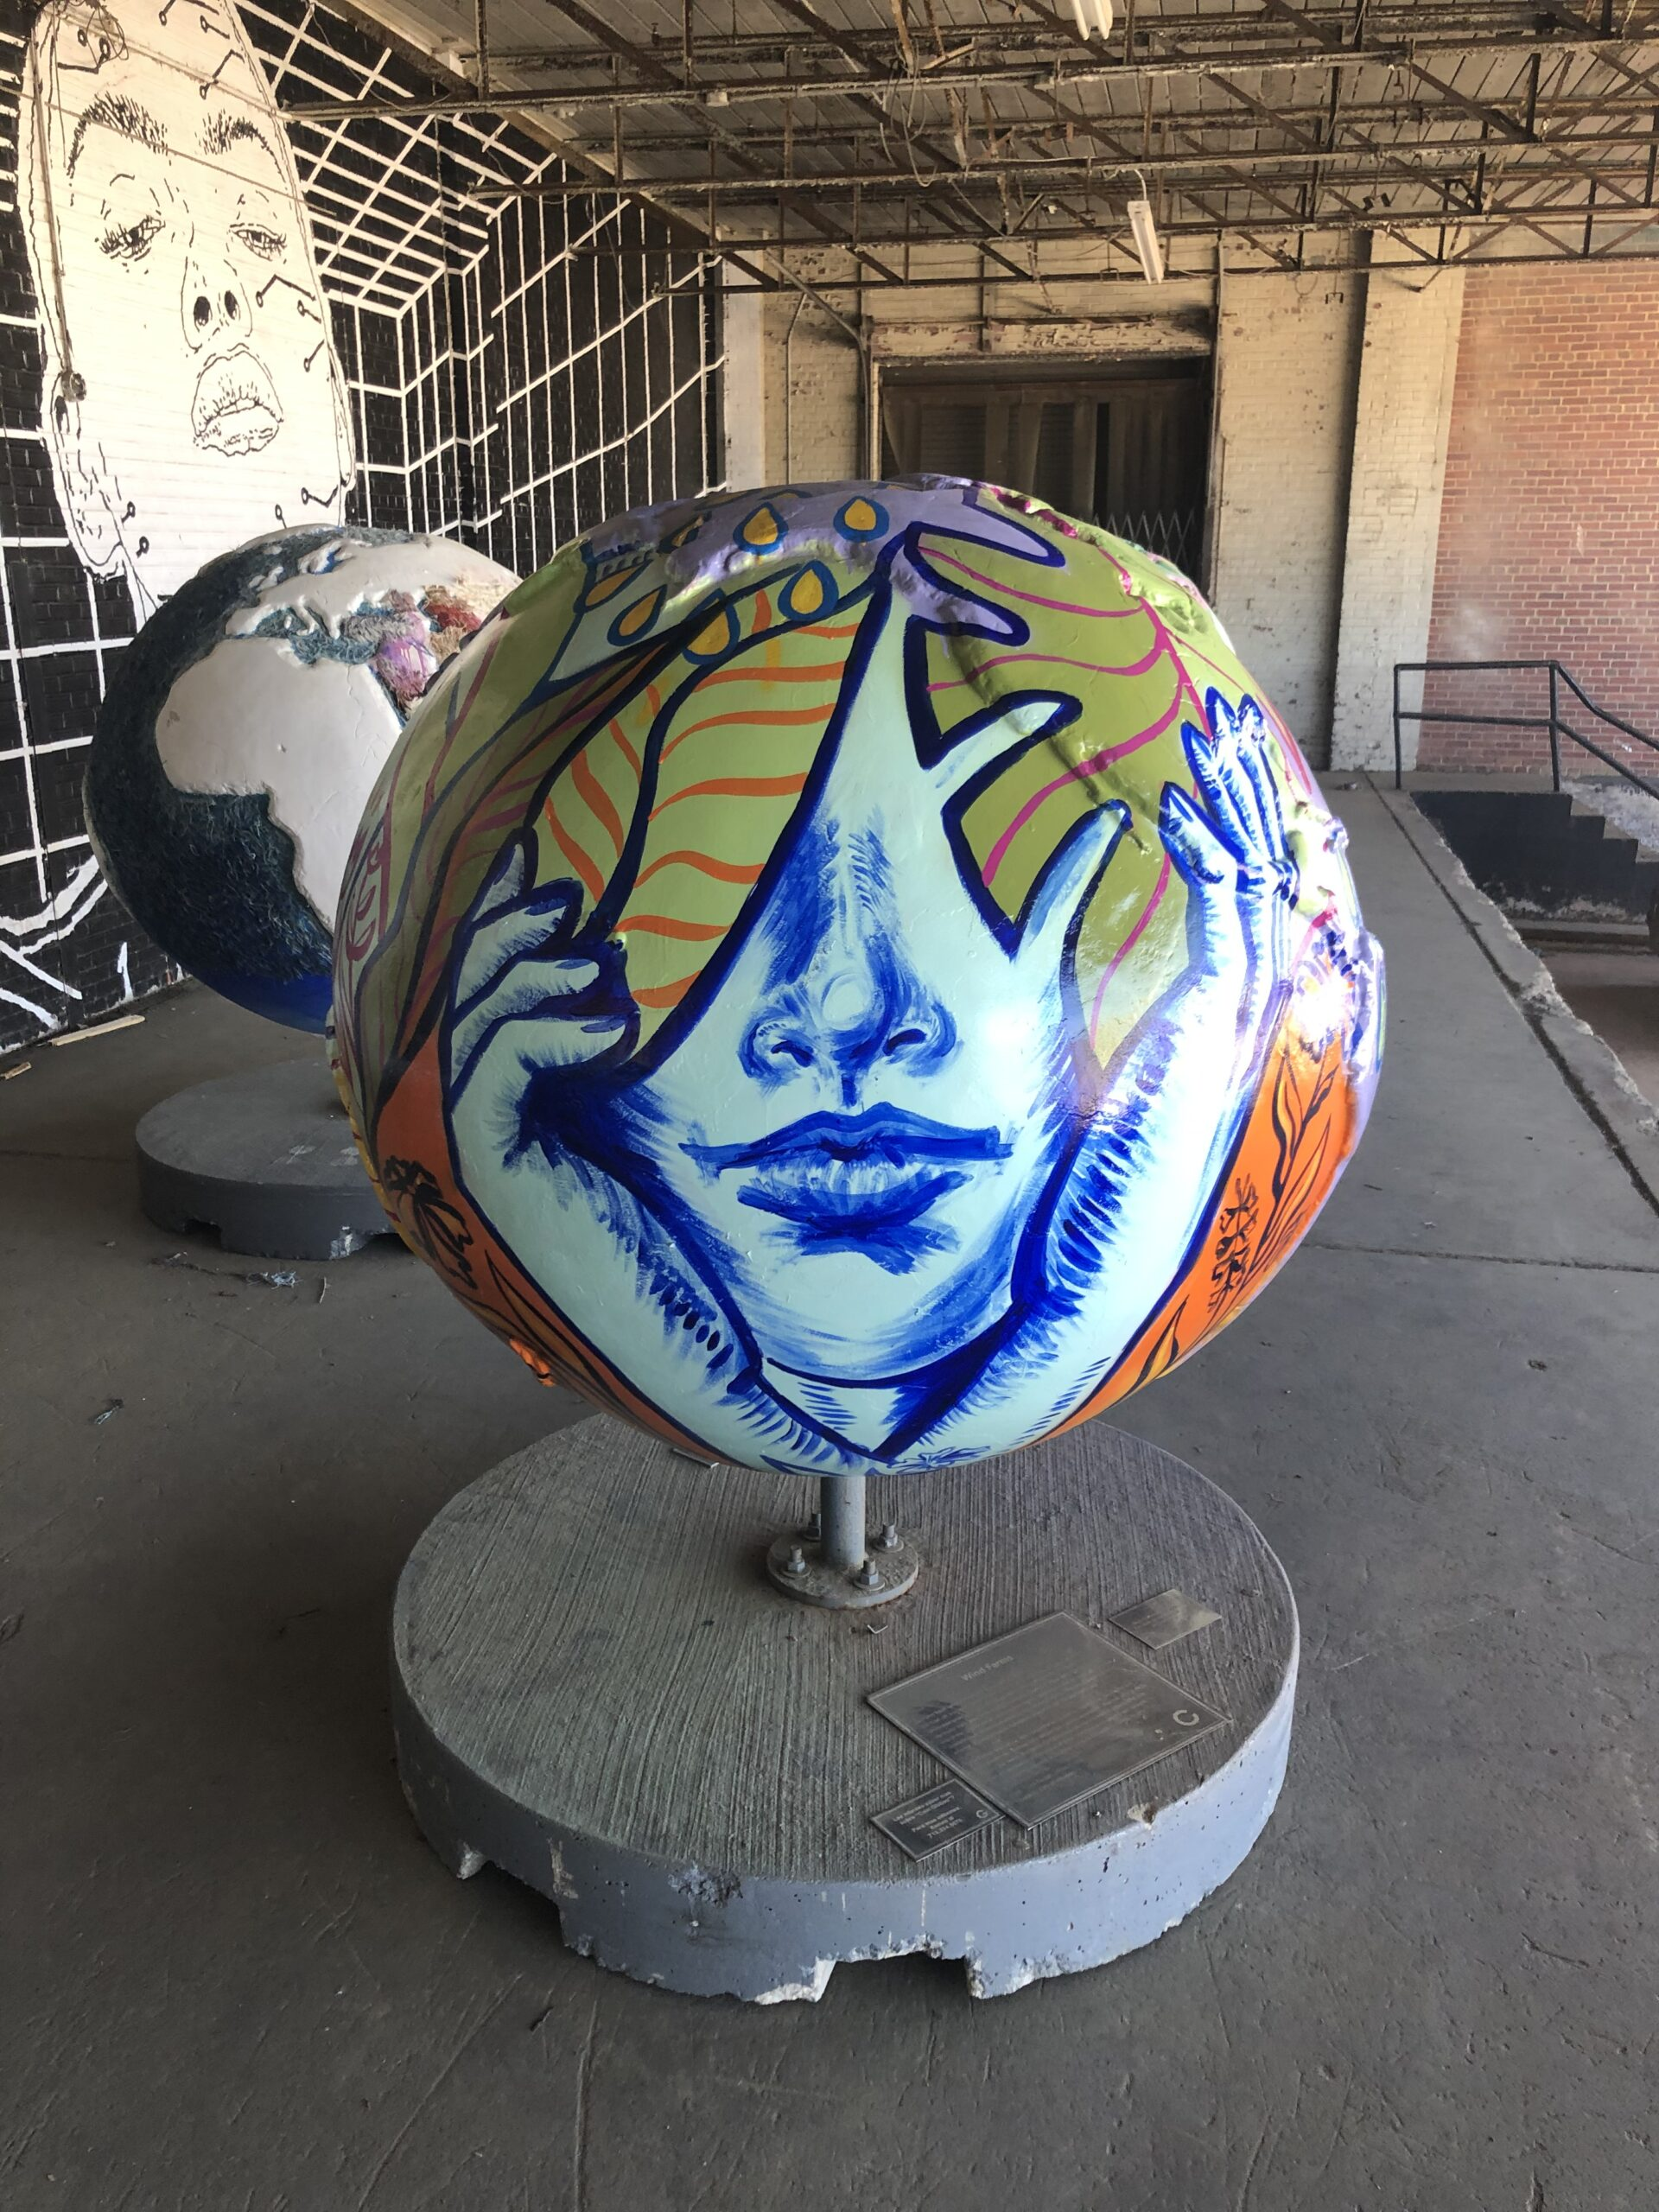 Globe painted with a monotone face cradled in two hands surrounded by bright tropical leaves